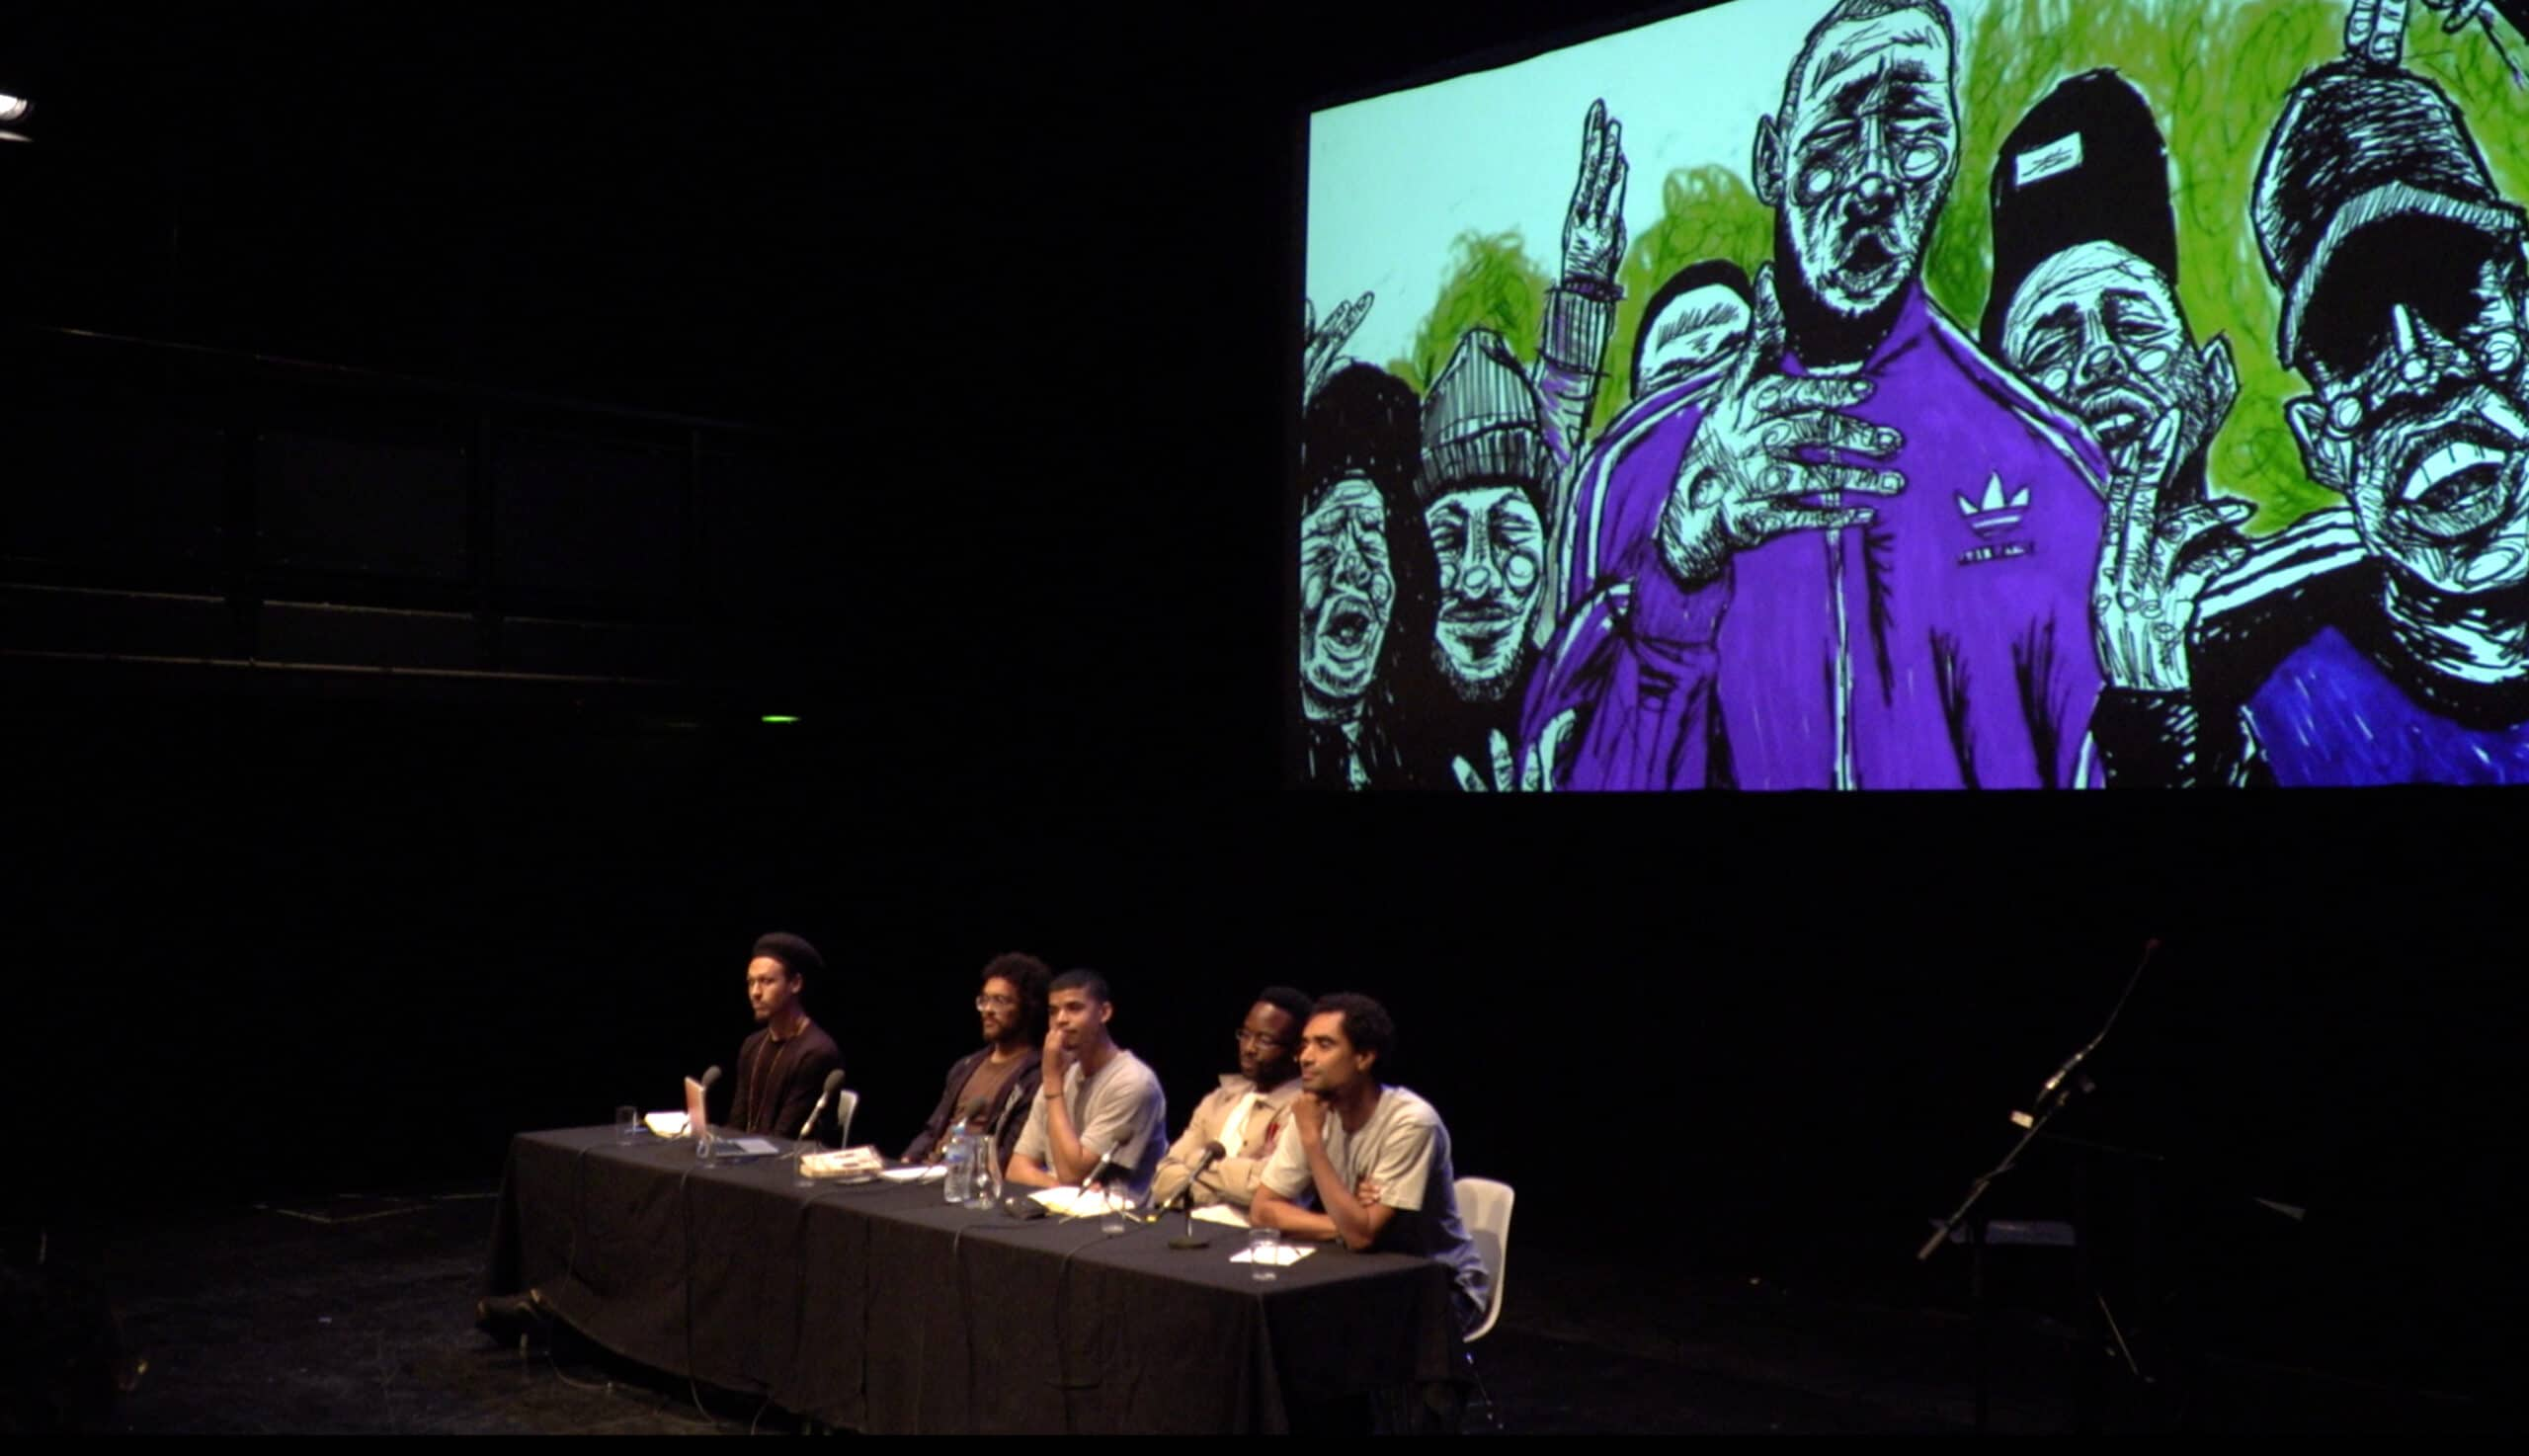 Still image from the 'Do Mandem Need Feminism?' event at the Arnolfini in Bristol